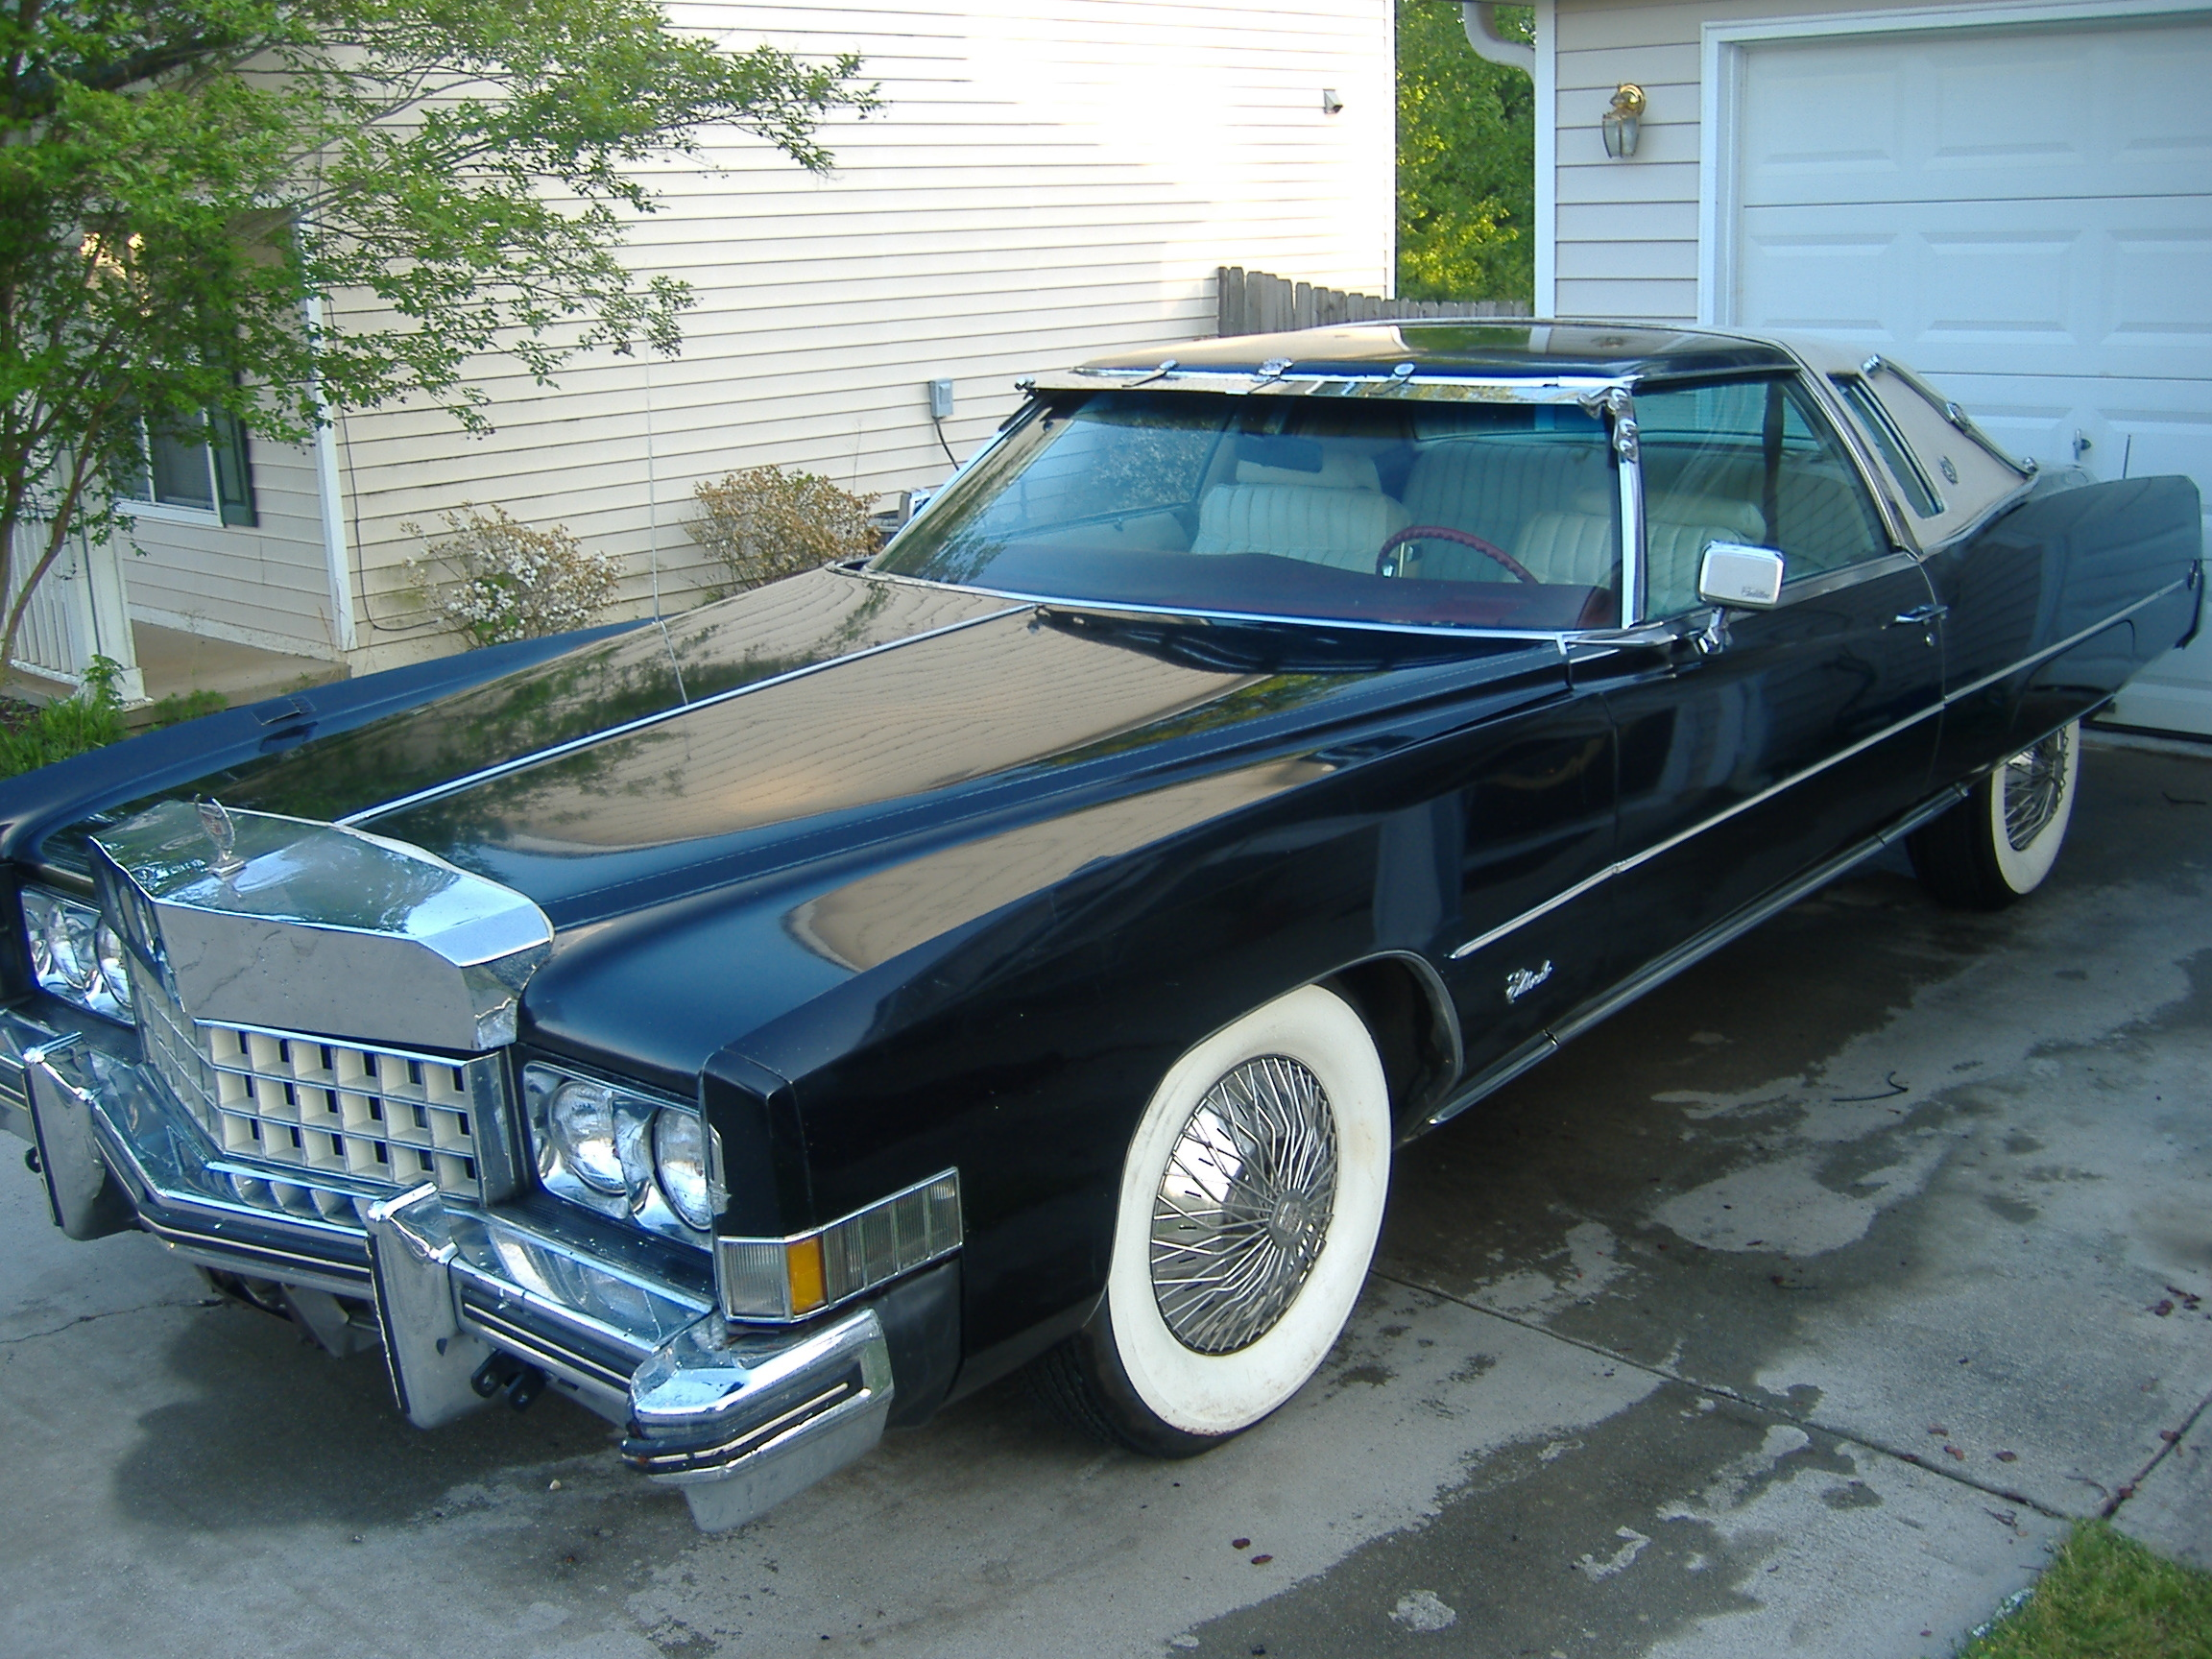 priest73superfly's 1973 Cadillac Eldorado